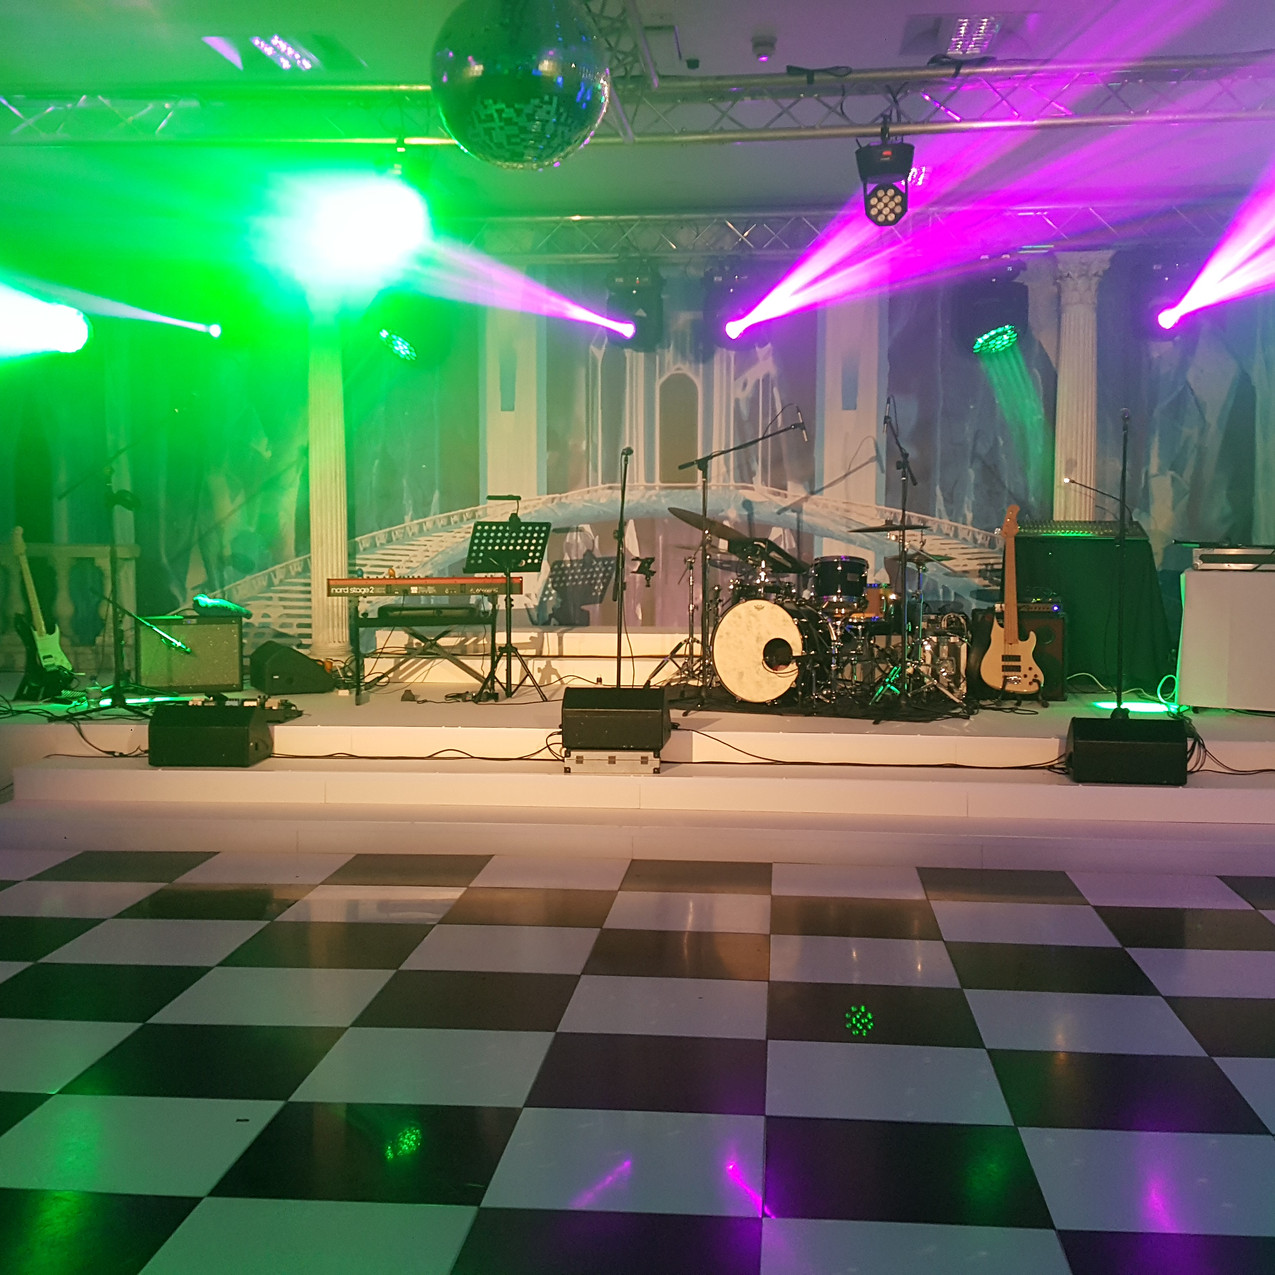 Narnia dance floor stage & backdrop